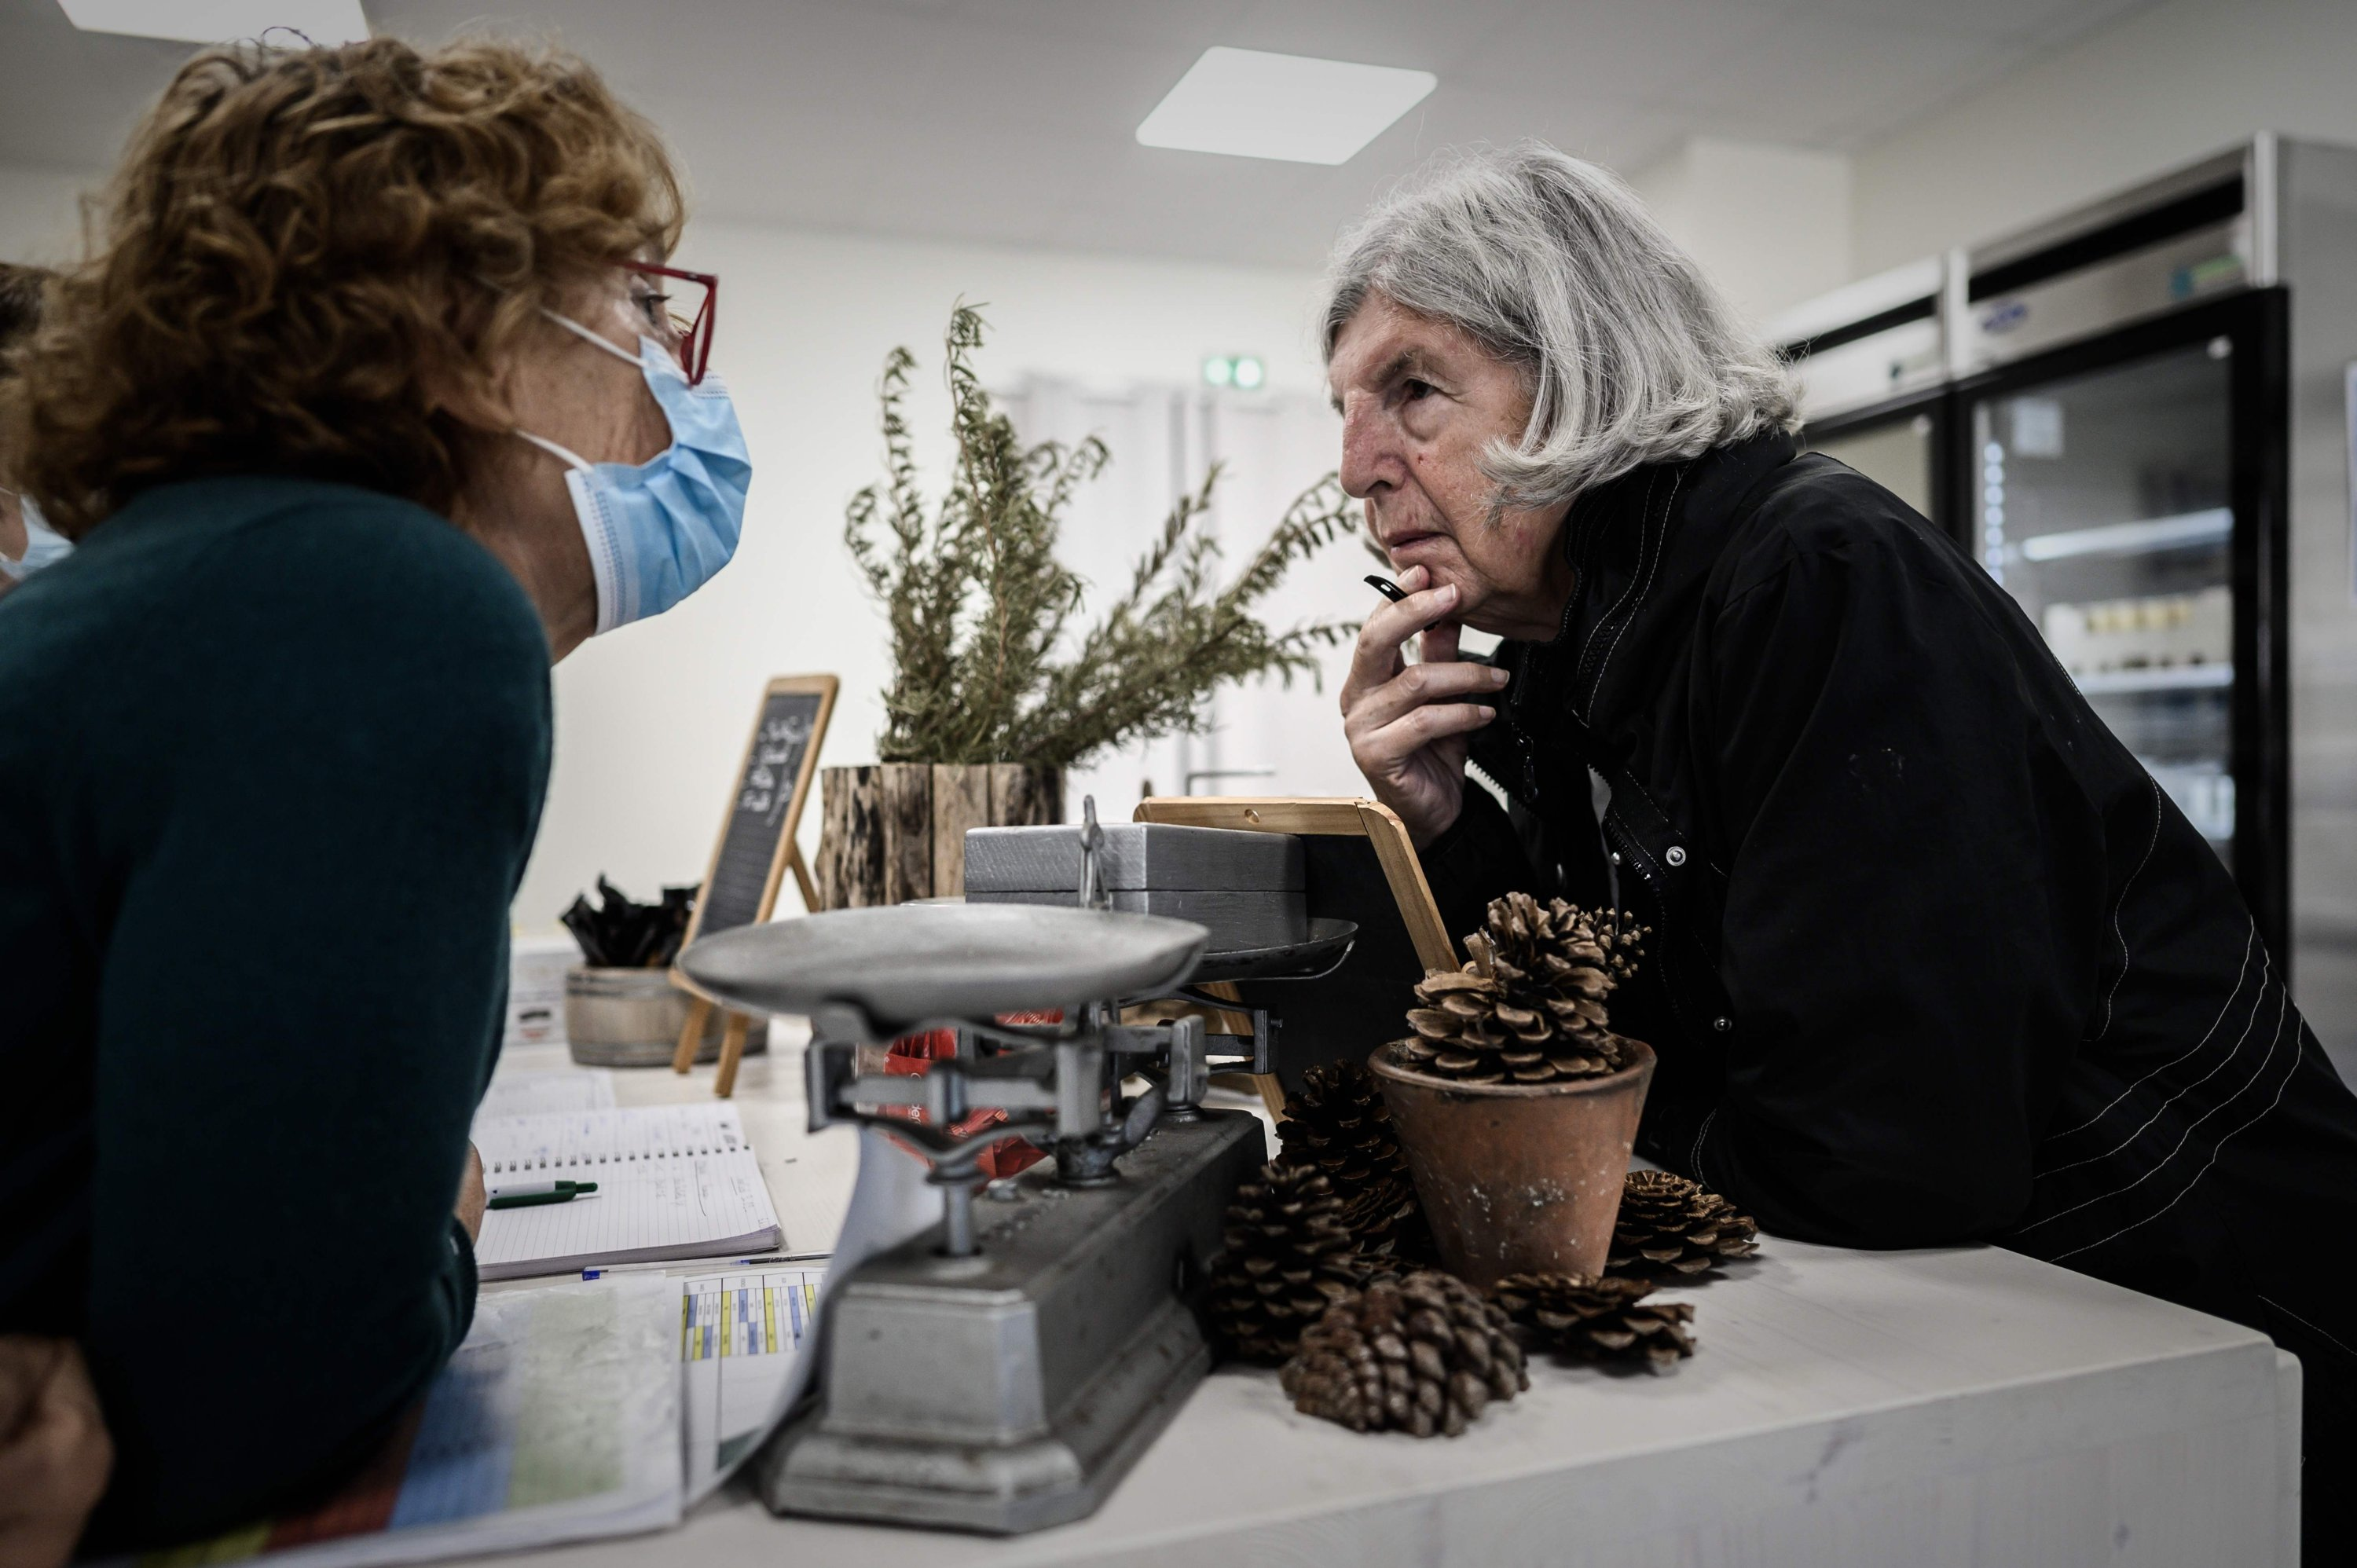 An Alzheimer's patient (R) chats with a staff member at the grocery store of the village Landais Alzheimer site for Alzheimer's patients in Dax, southwestern France, Sept. 9, 2020. (AFP Photo)